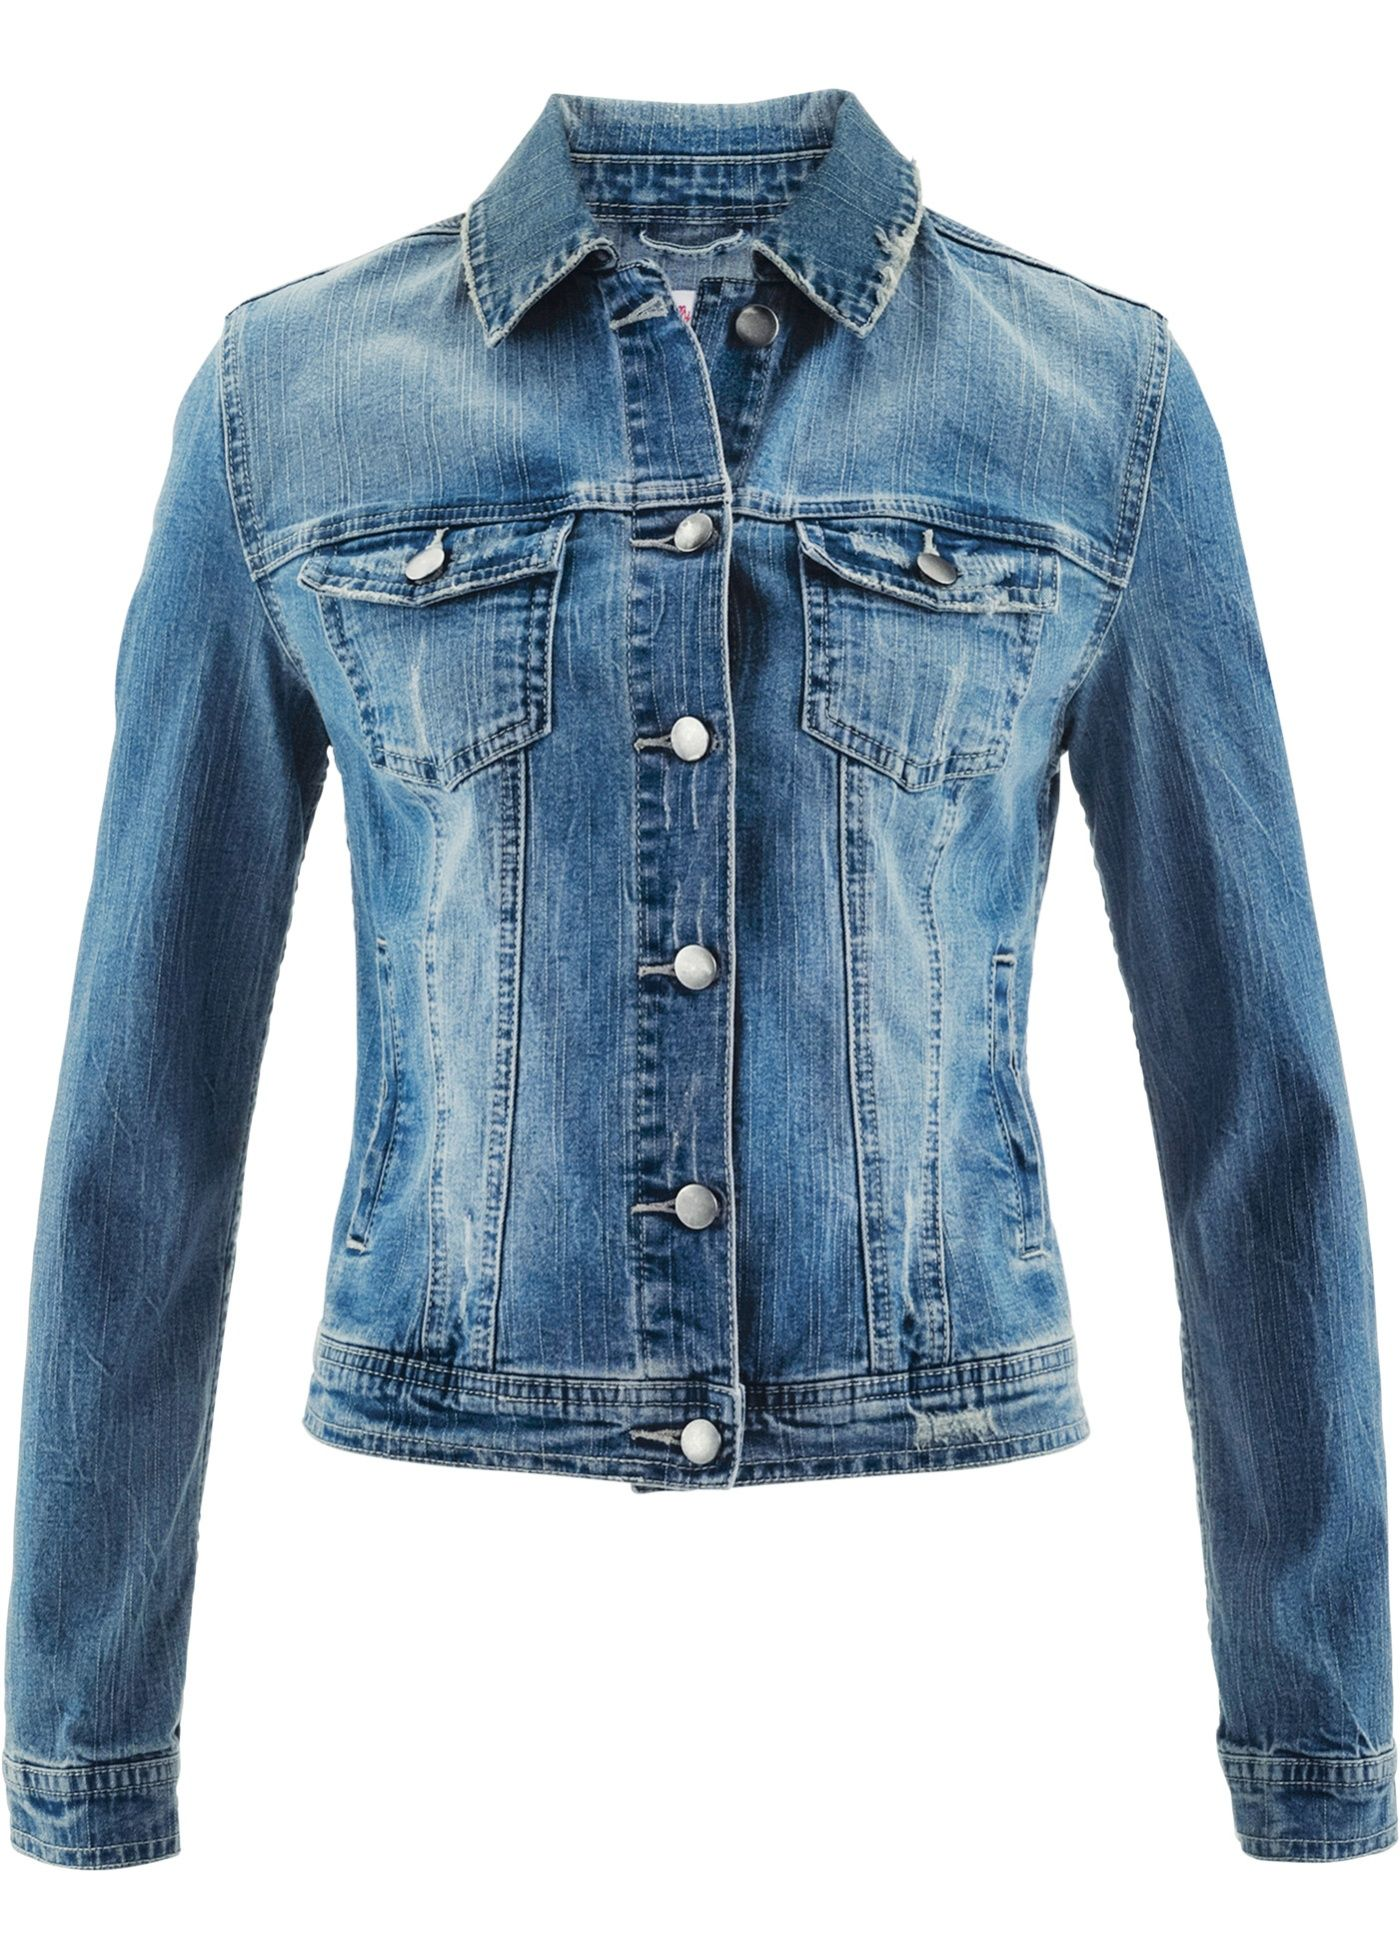 newest b95e6 102ae Attraktive Jeans-Jacke im leichten Used-Look | Products in ...